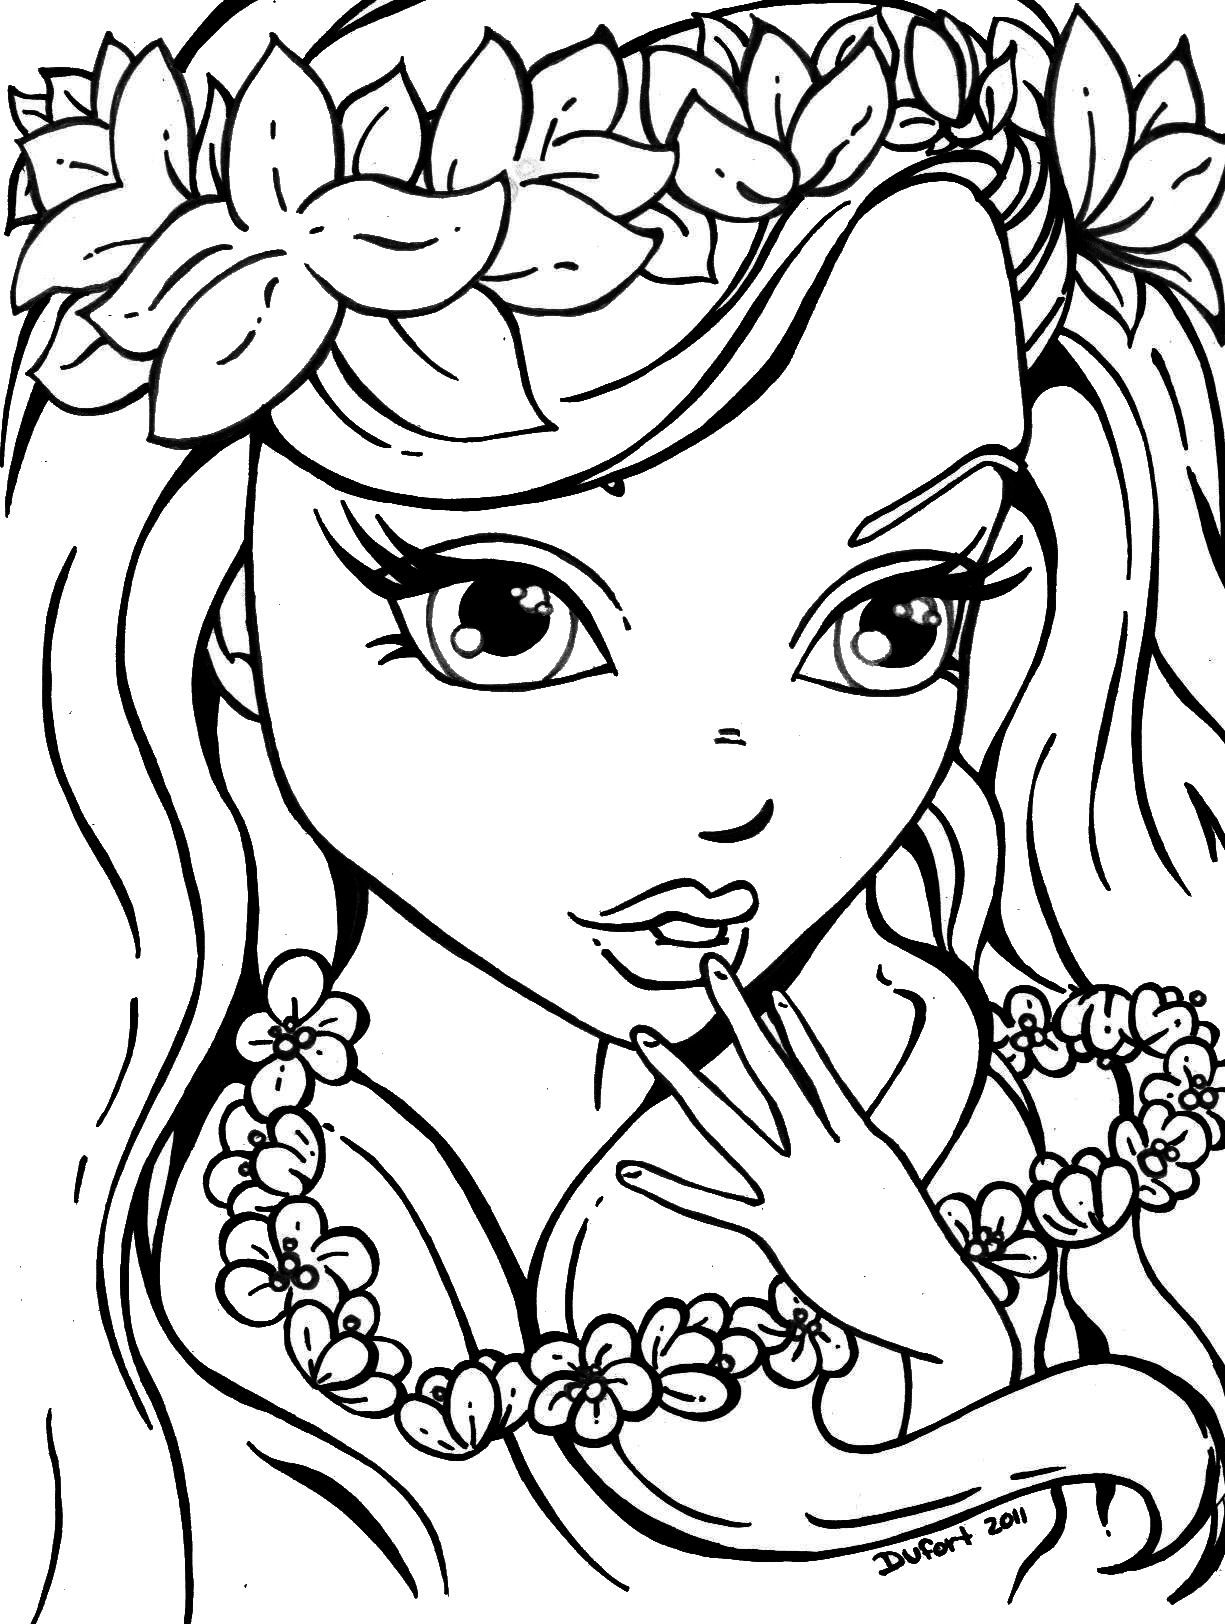 Flowers Girl Mermaid Coloring Pages Cool Coloring Pages Cute Coloring Pages